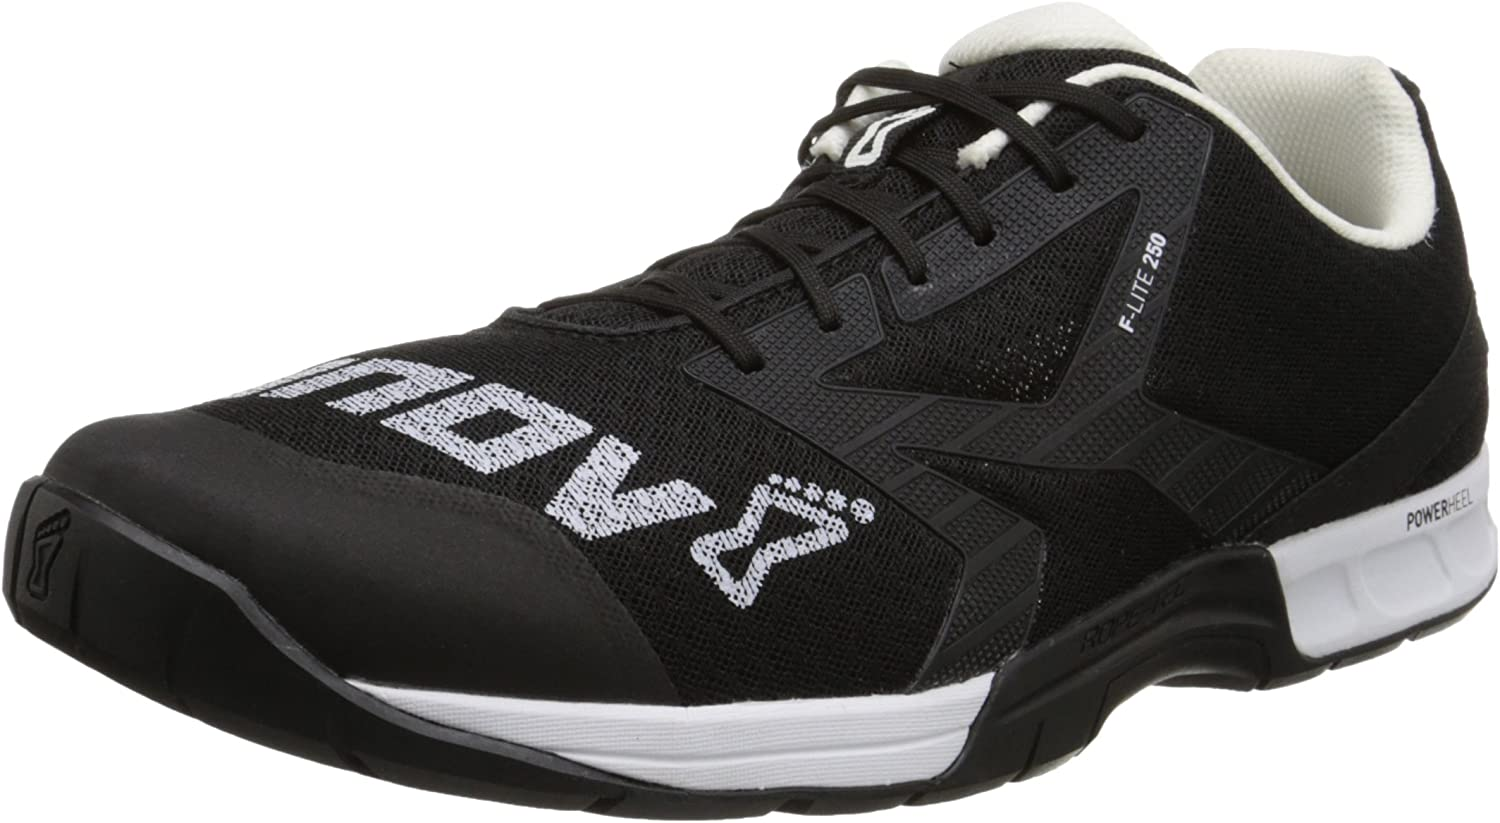 Black Mens Inov8 F-lite 230 Mens Training Runners Sneakers Comfort Shoes